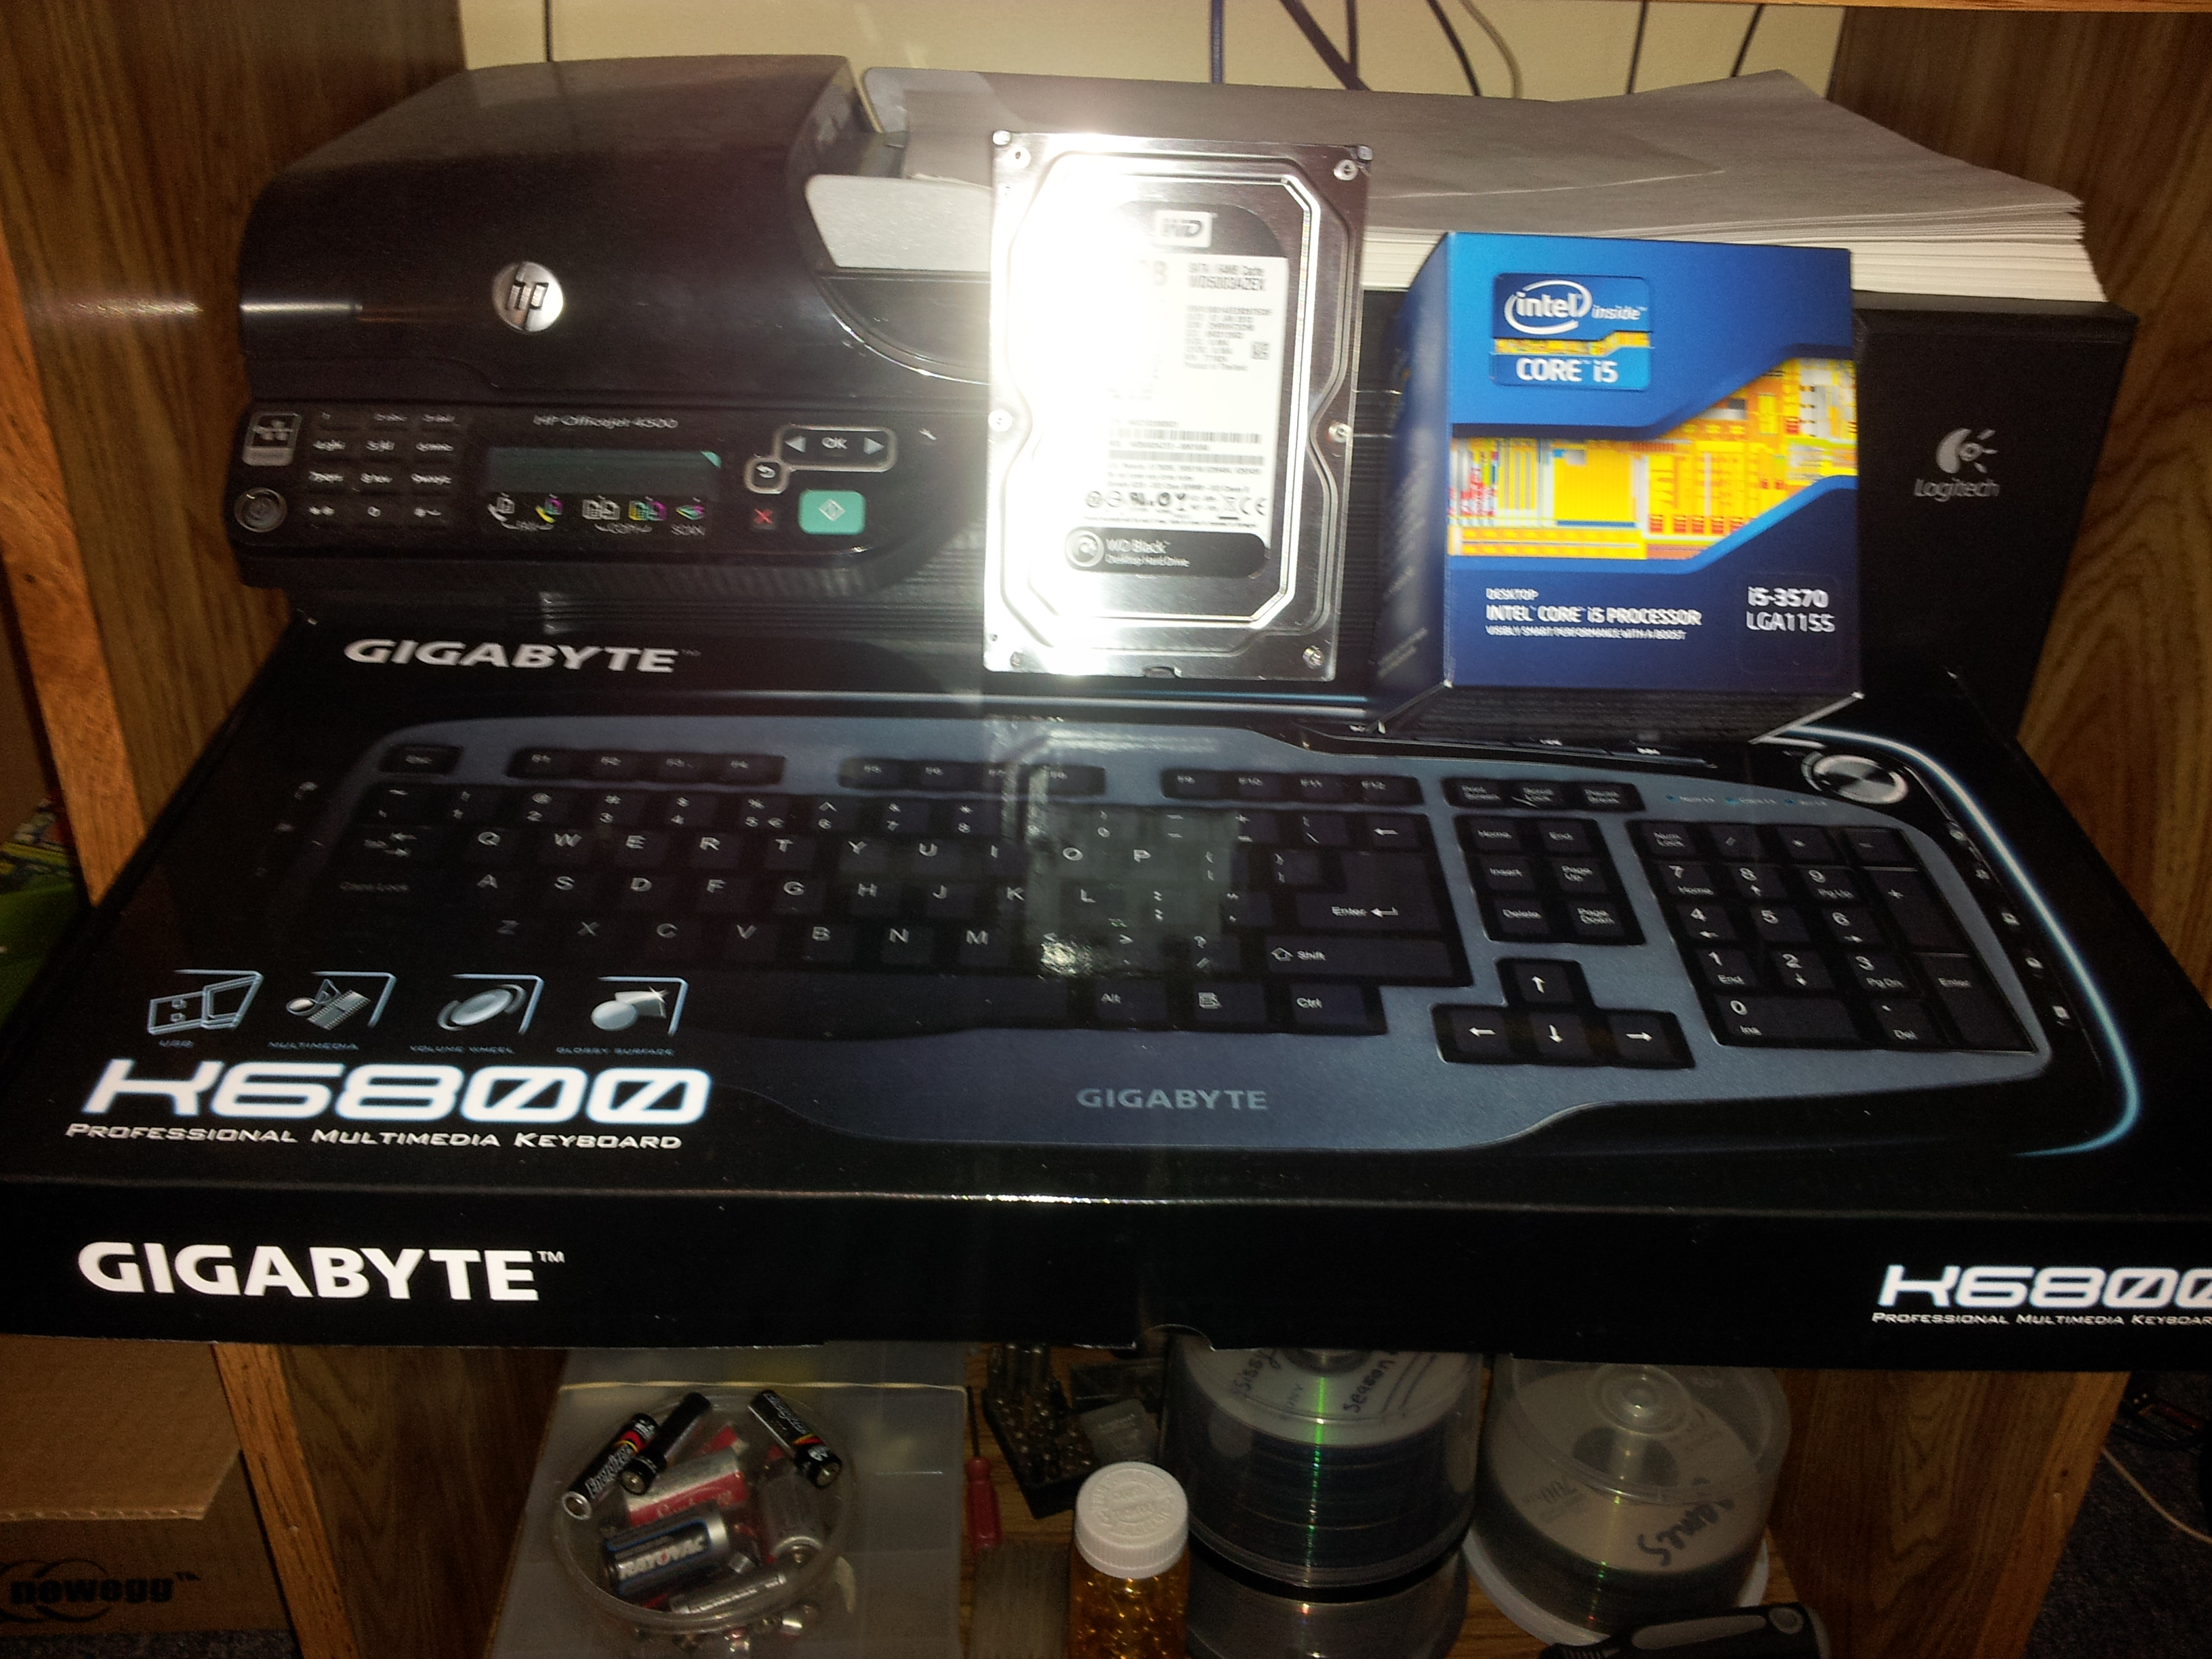 Better look at the keyboard, my first ever Intel cpu (I5-3570k) and the sata 3 500 gig black drive to match my other one to put in raid 0 for storage.